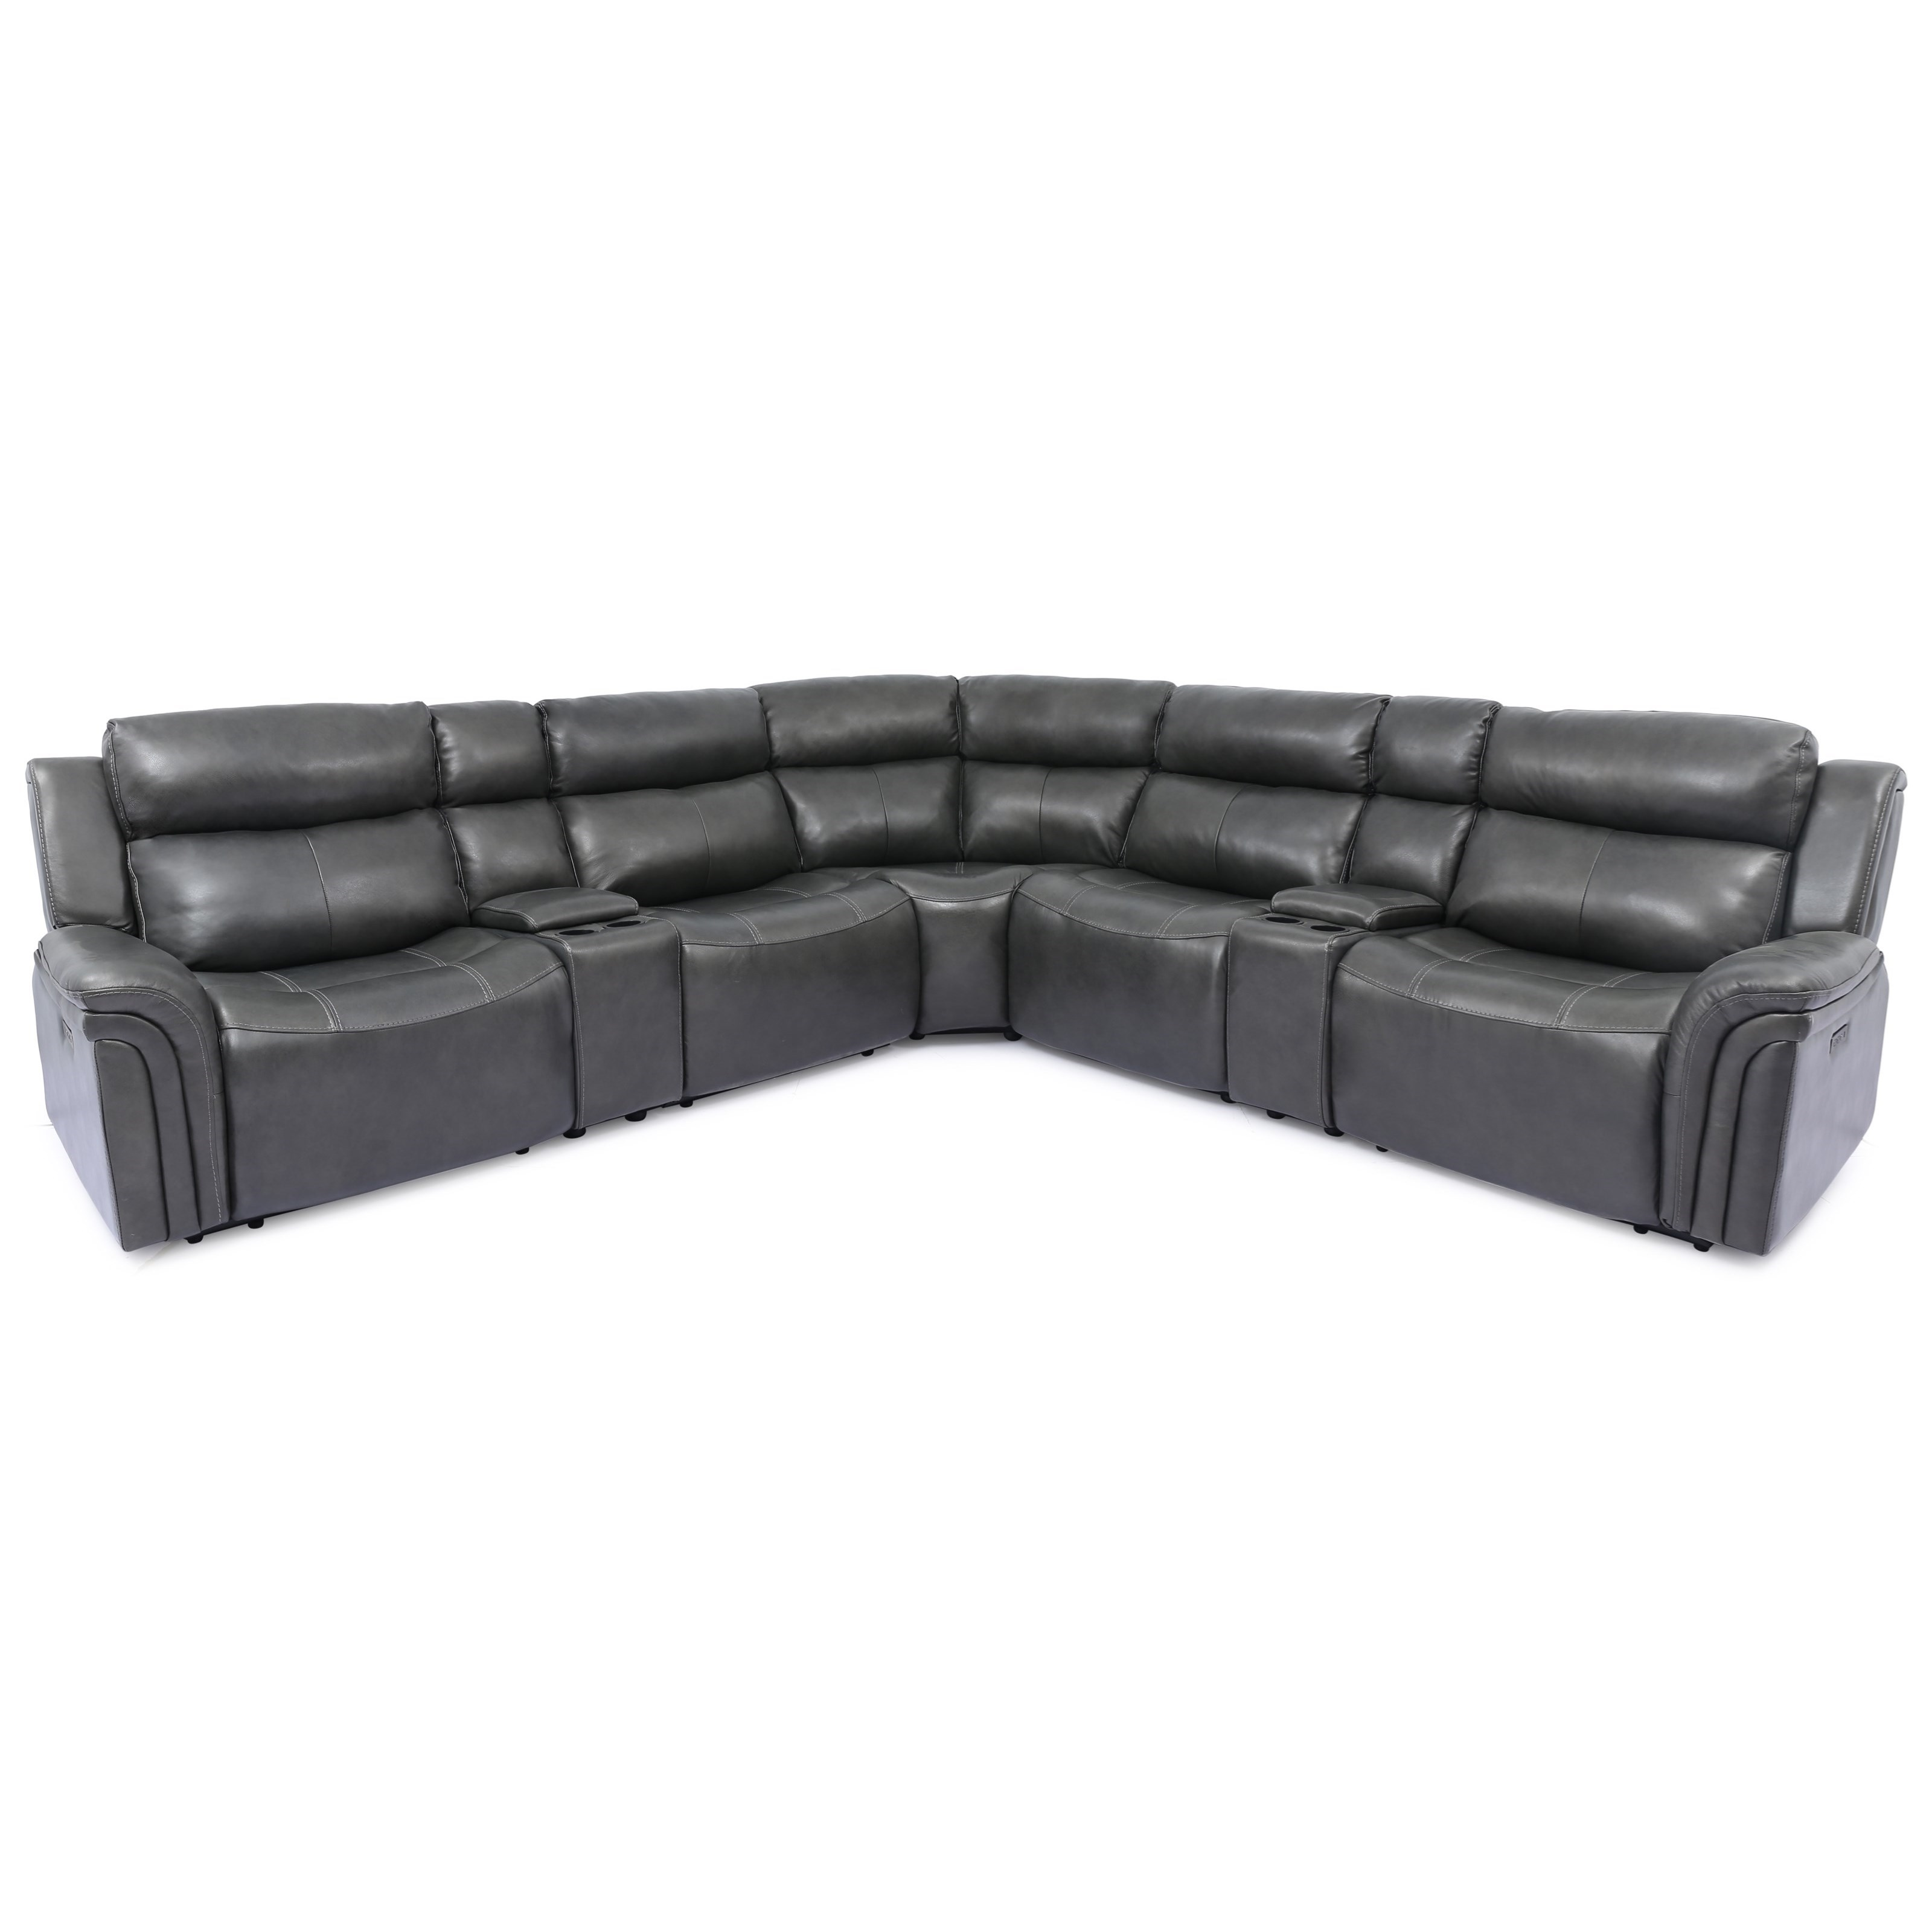 70046 Power Headrest Reclining Sectional by Cheers at Lagniappe Home Store